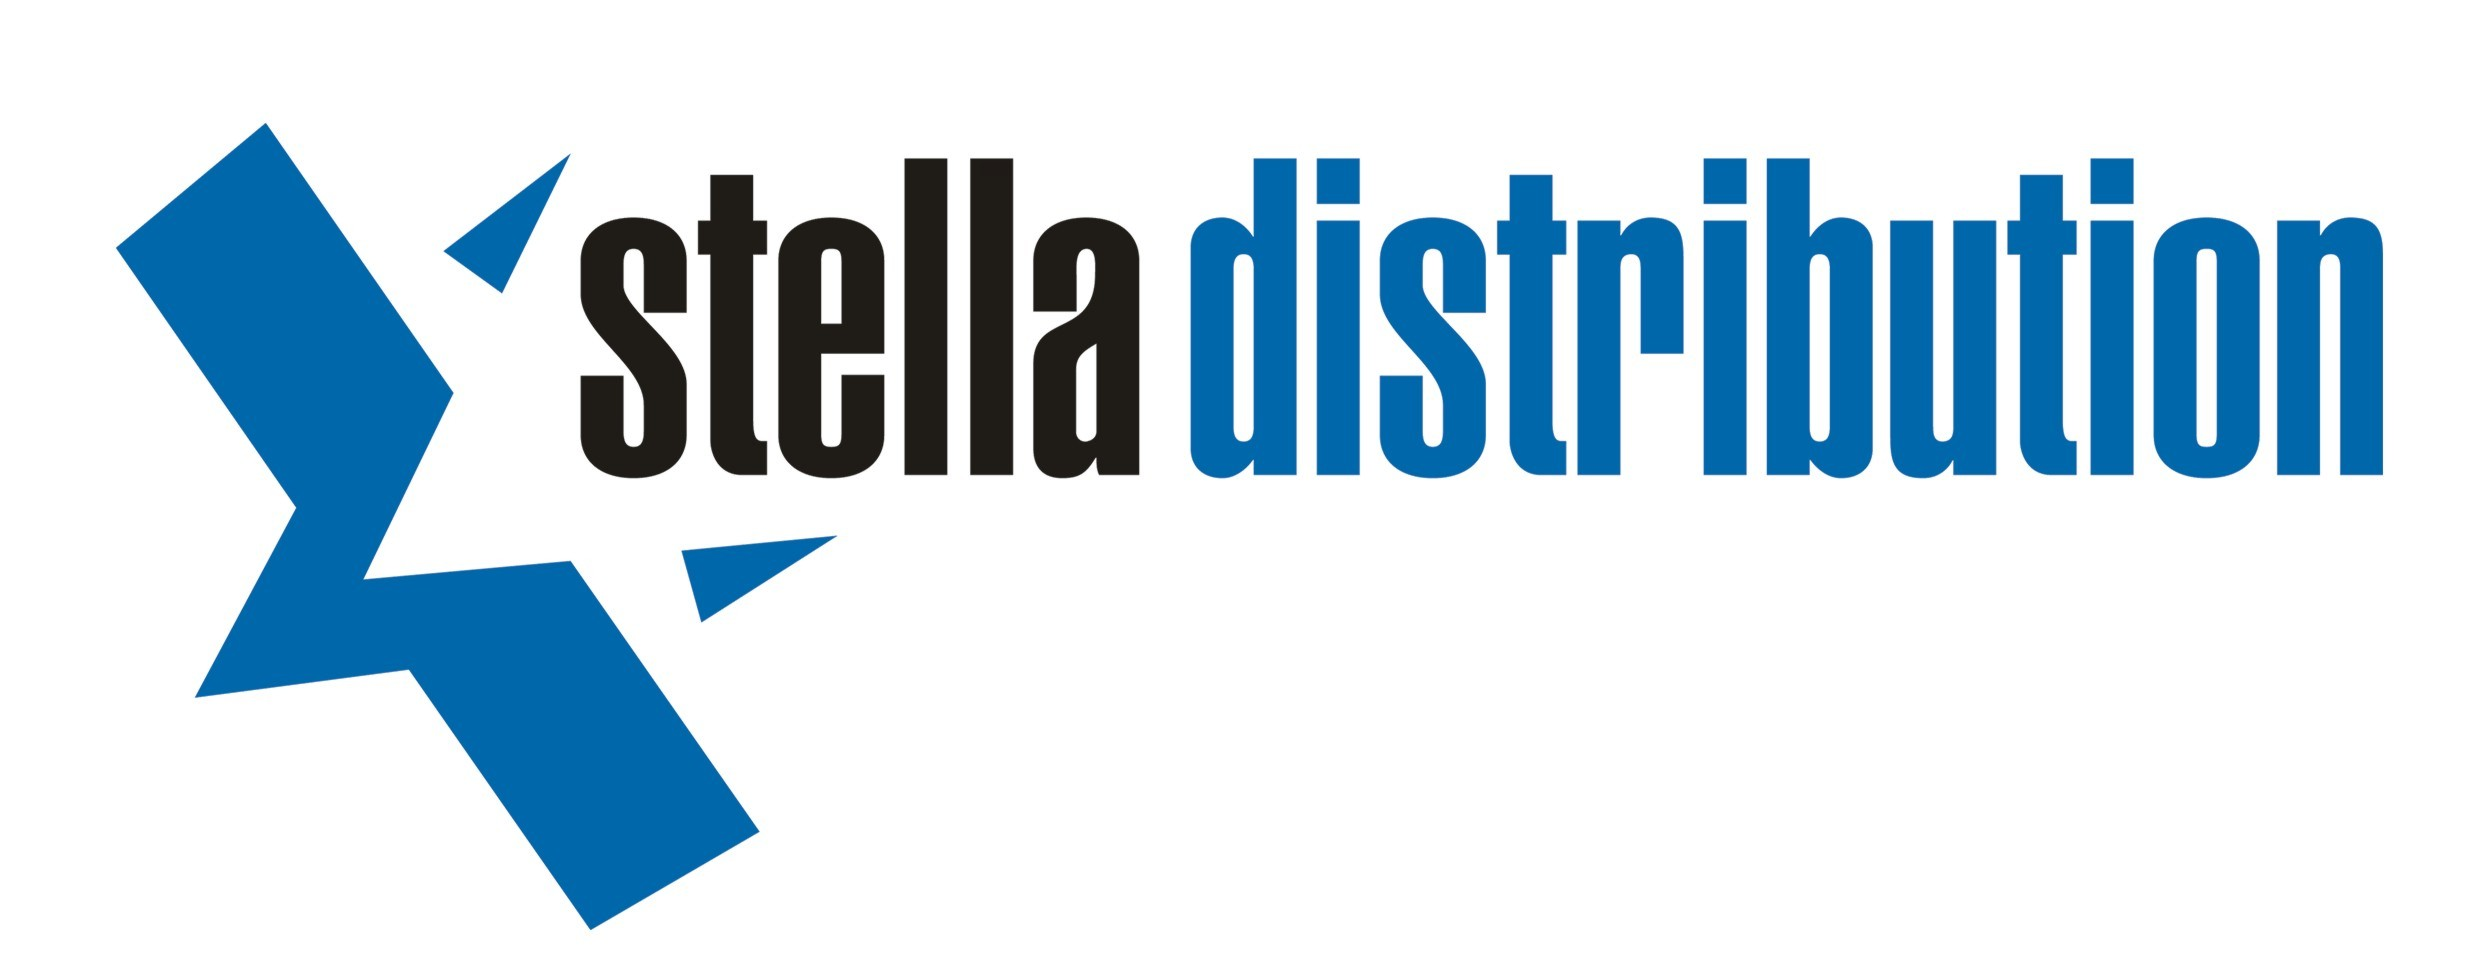 stella distribution GmbH